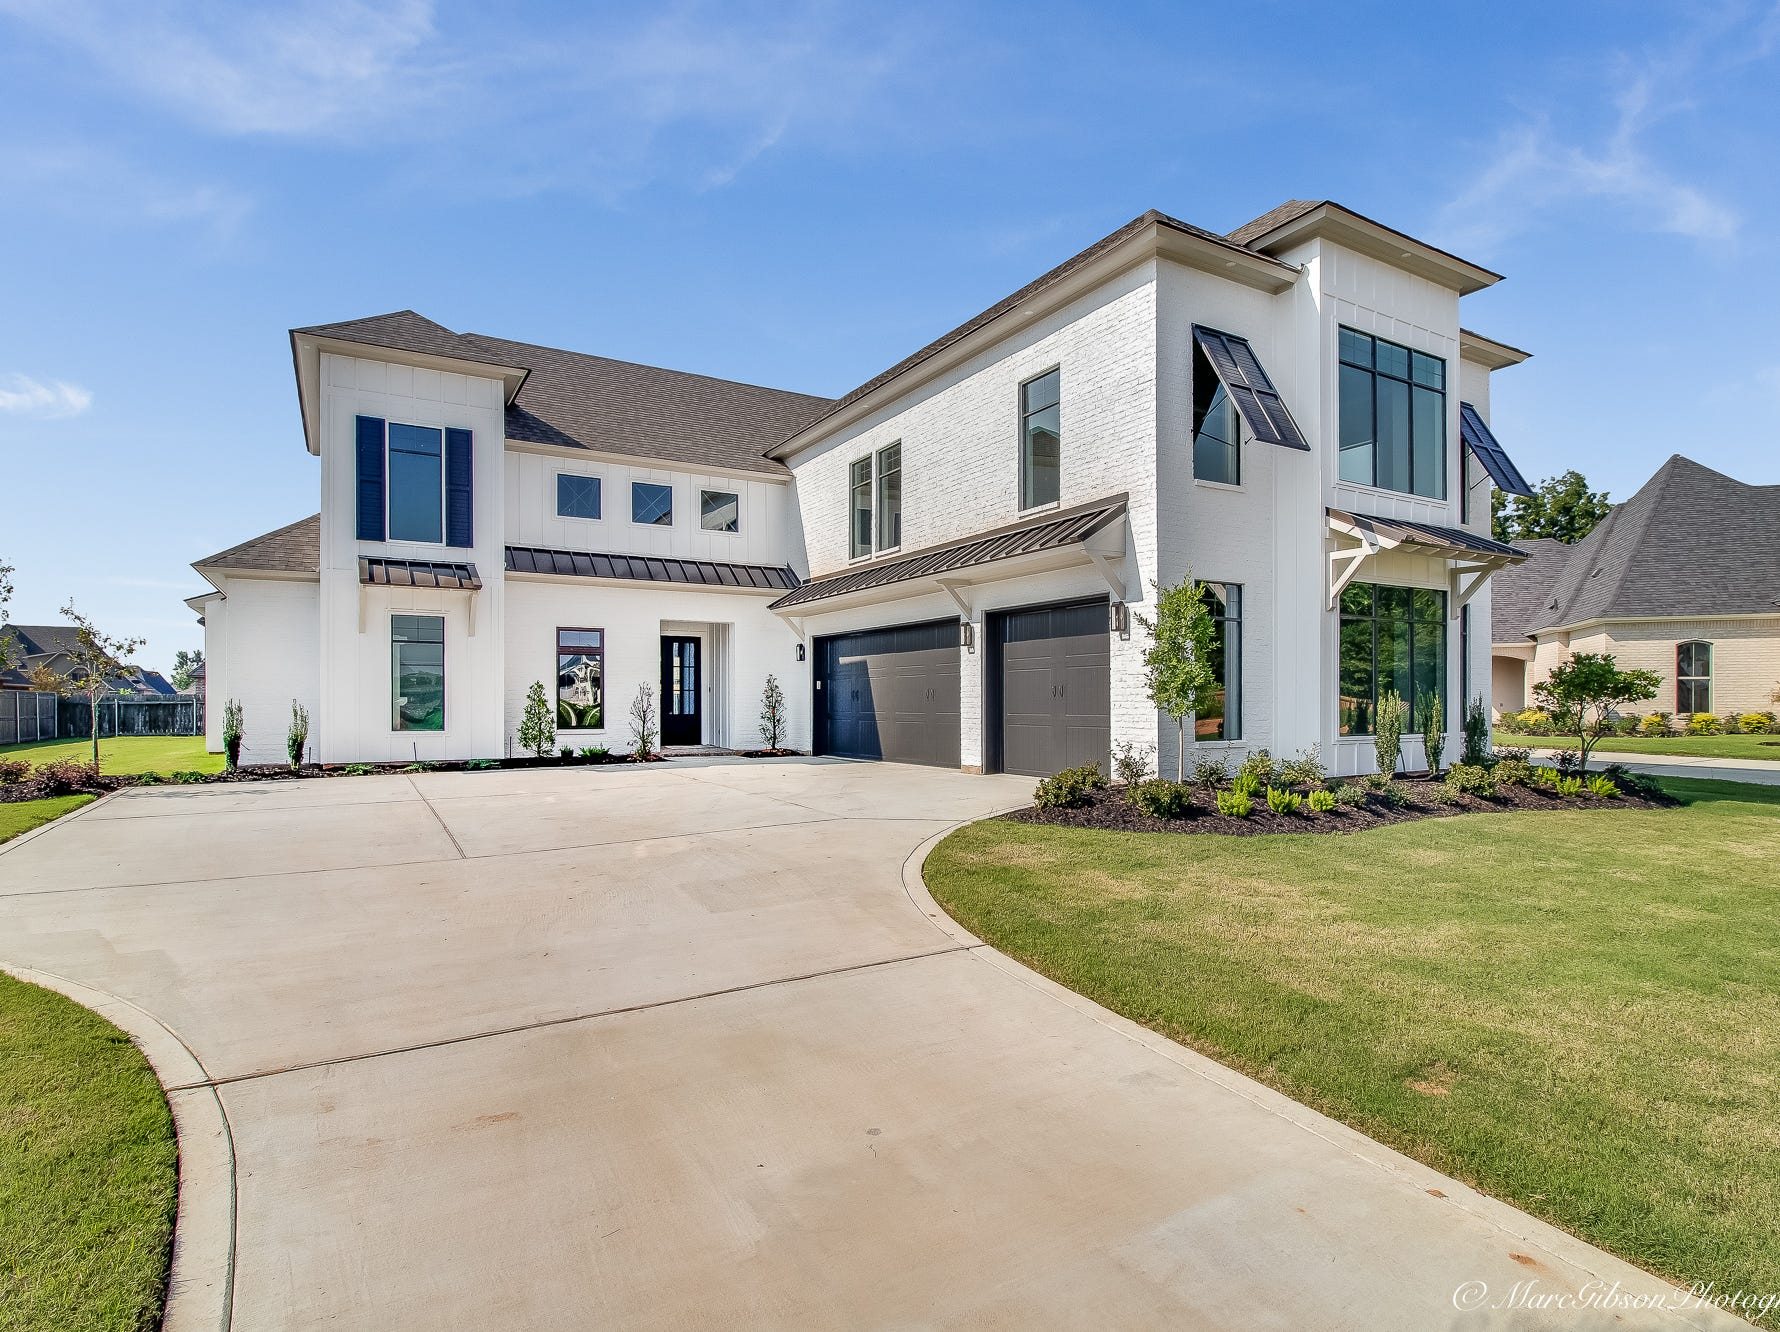 605 Caledonia Drive, Bossier City  Price: $504,000  Details: 4 bedrooms, 3 bathrooms, 3,150 square feet  Special features: Beautiful new build with latest trends,  open kitchen, tray ceilings, barn doors, free standing tub.  Contact: Tammi Montgomery, 540-6108